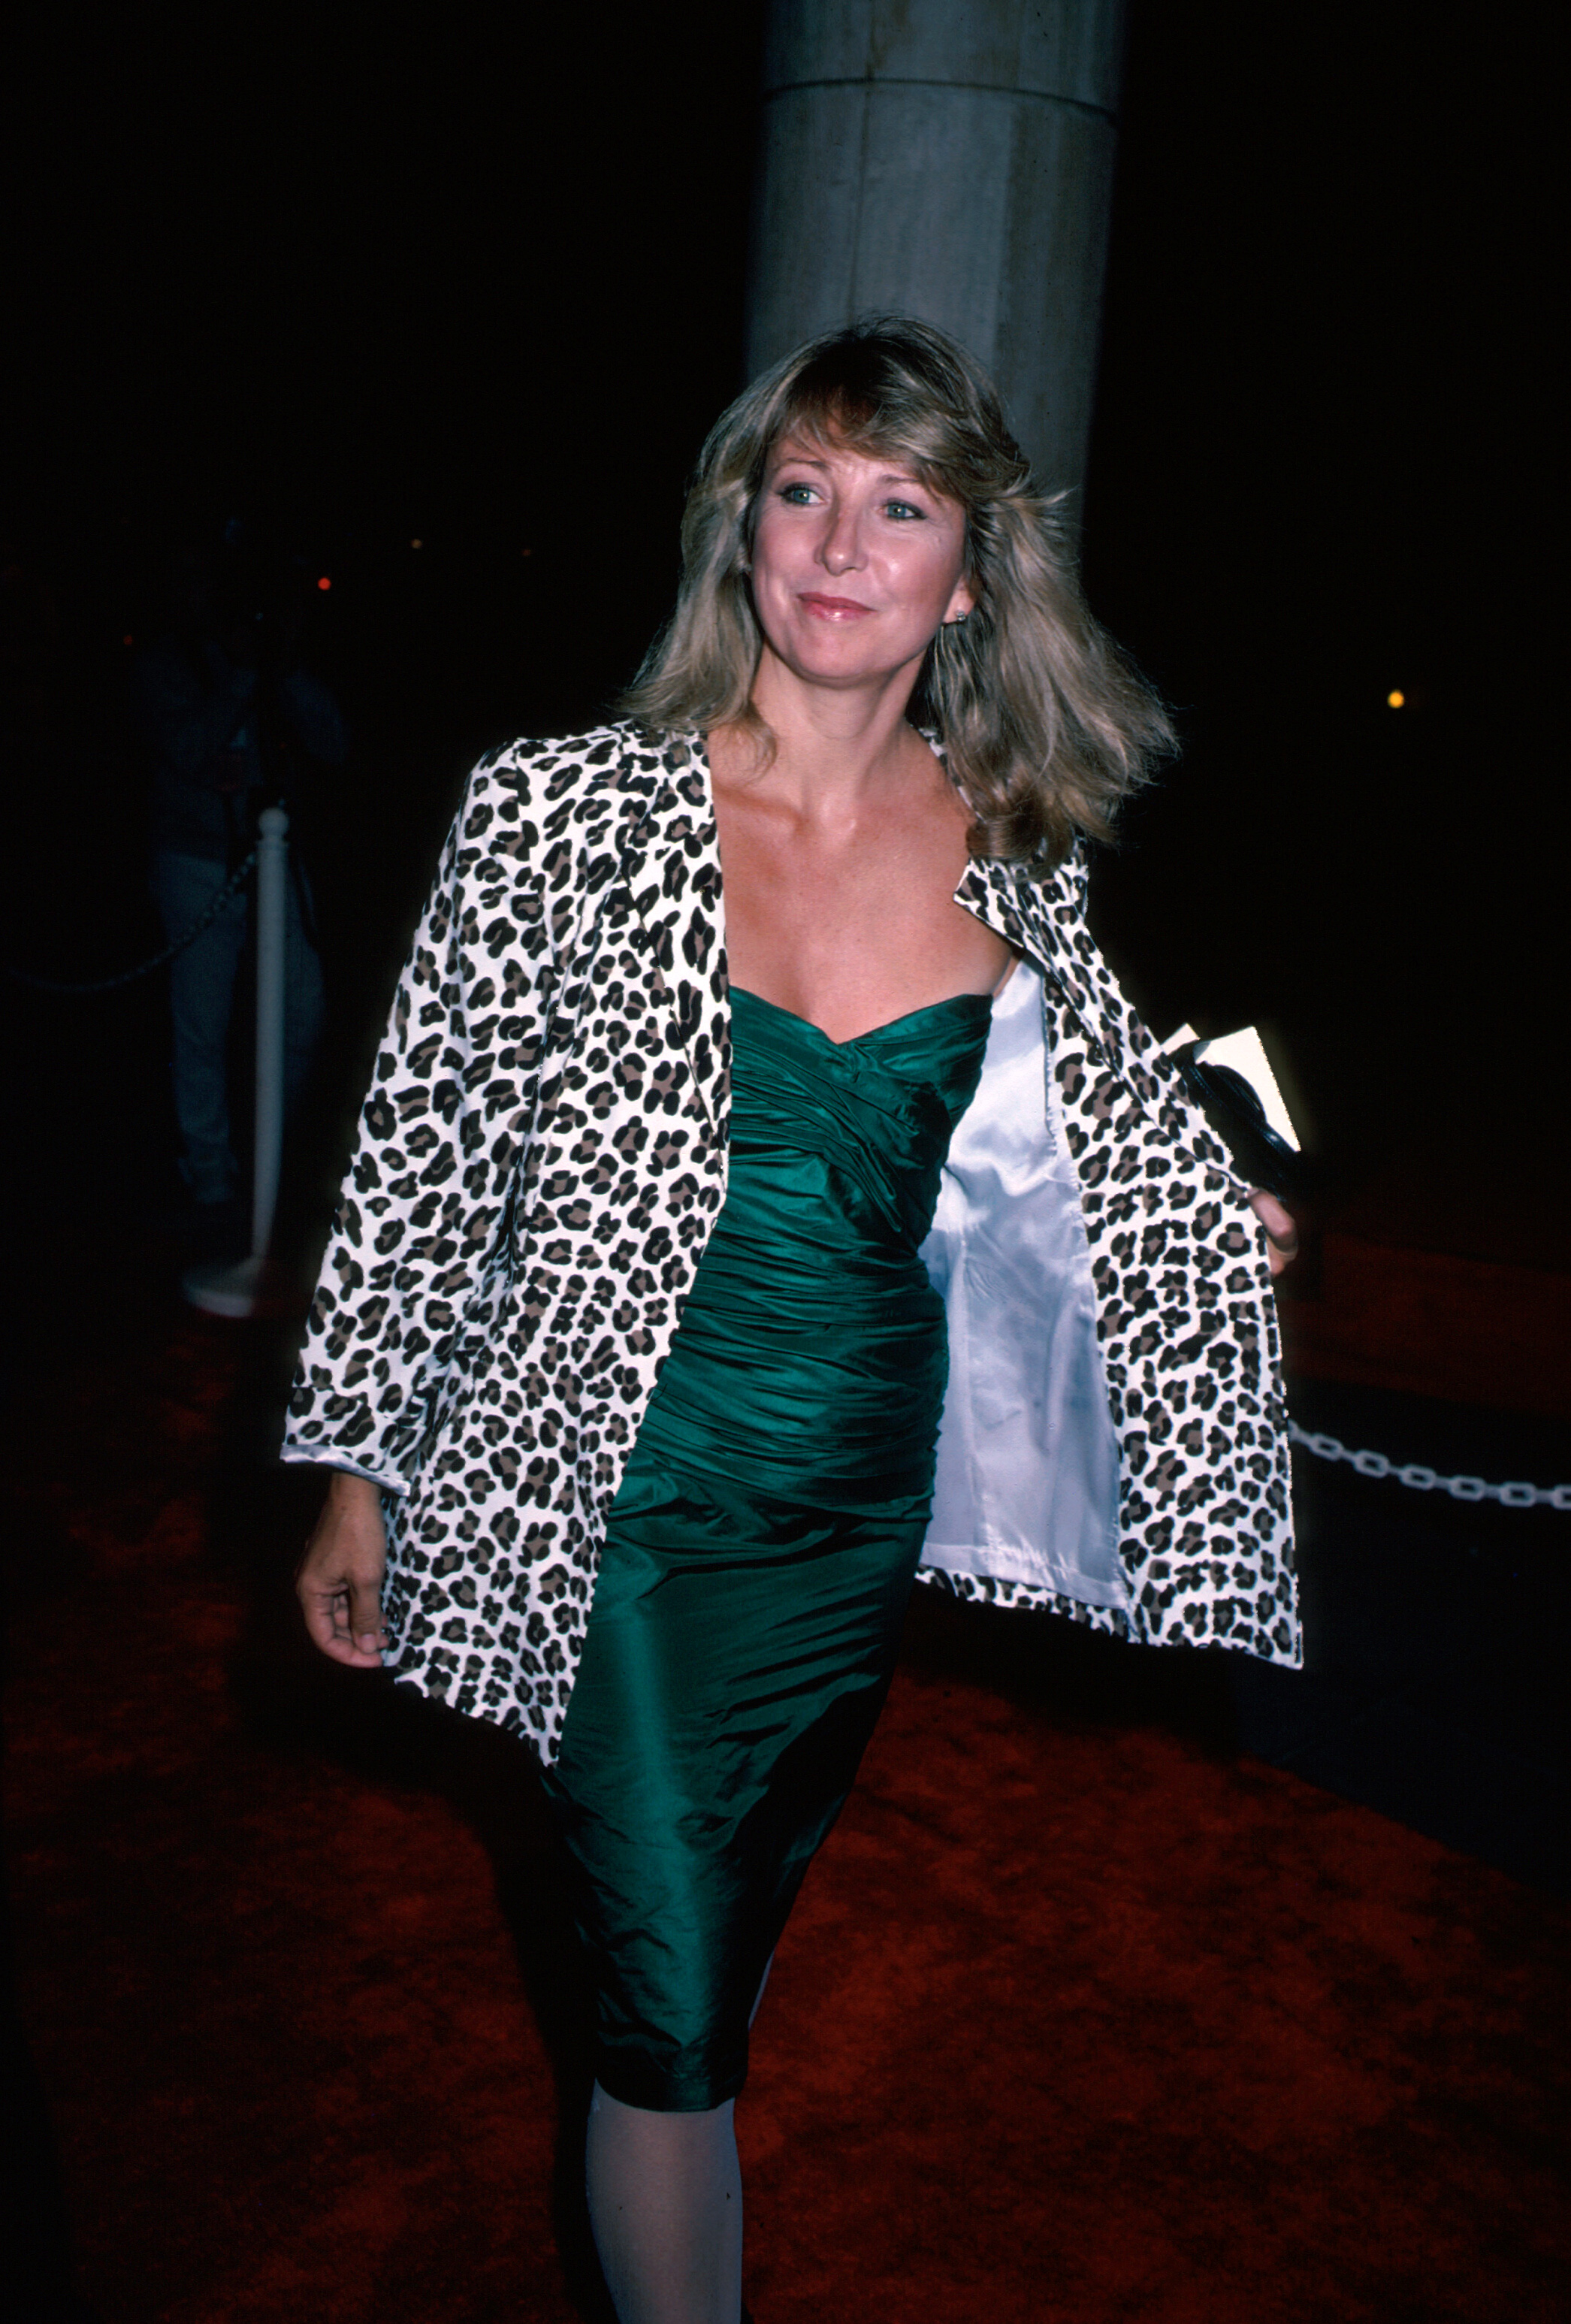 80s Fashion Trends That Are Coming Back - Style Trends ...